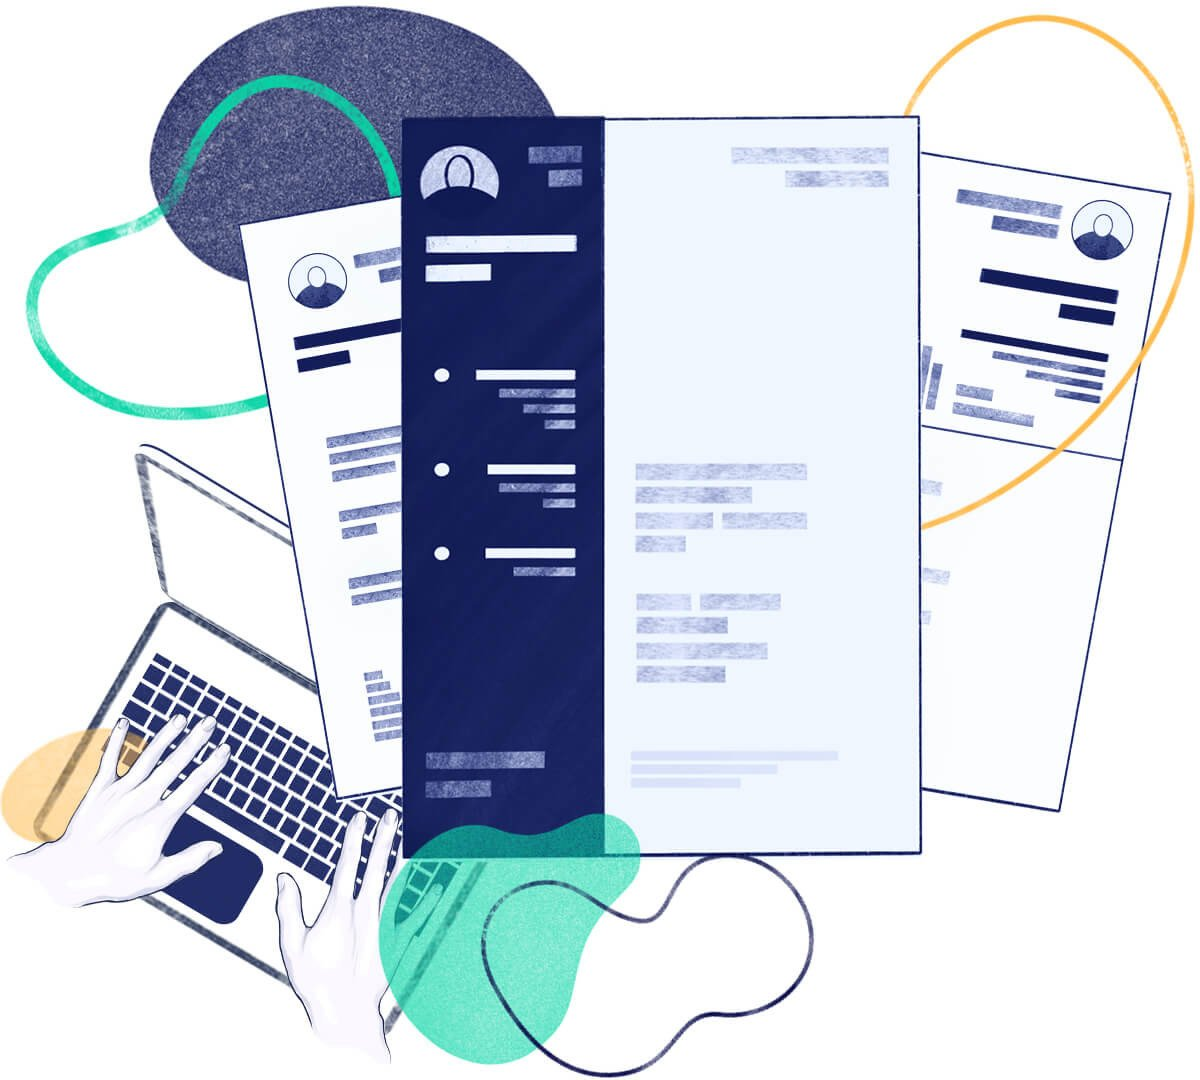 Computer Skills for a CV in 2021 [Examples of Software to List]